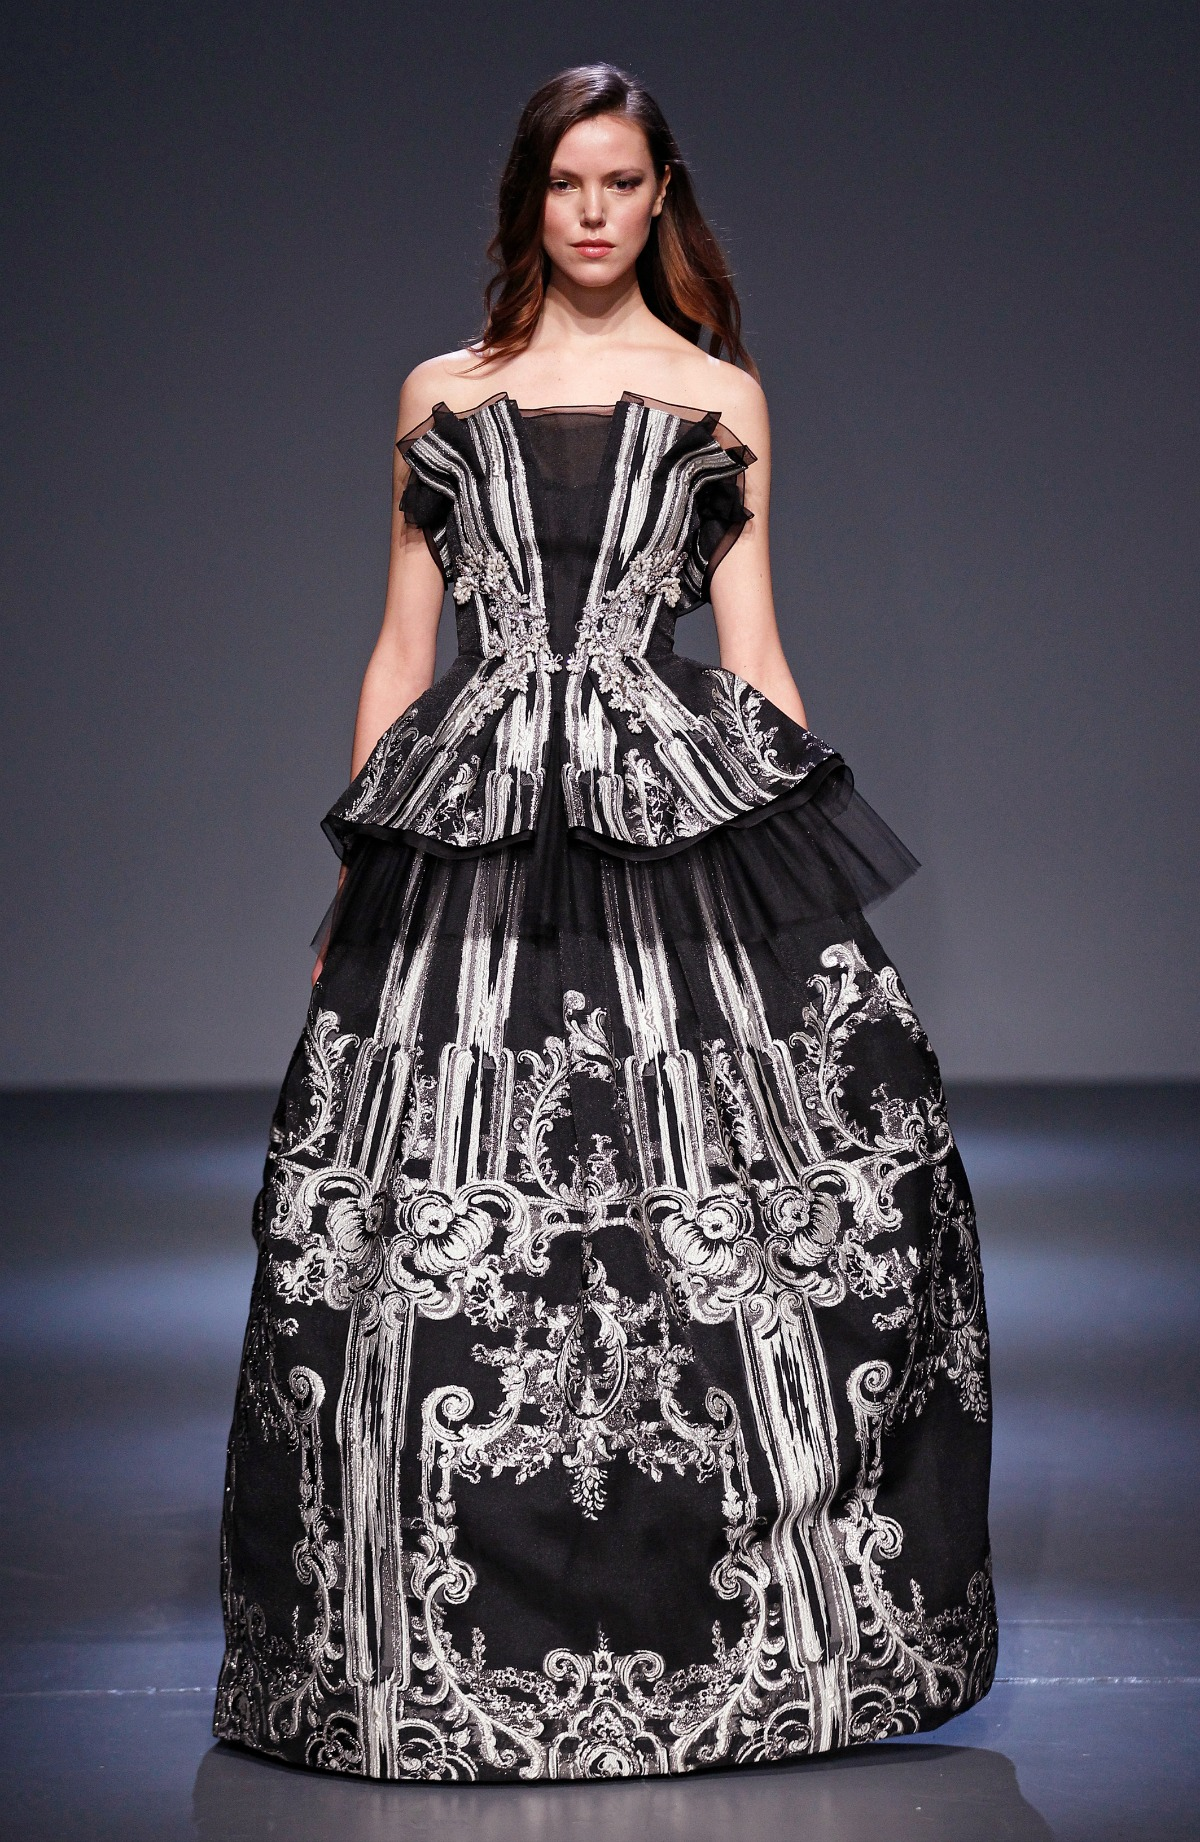 Pamella Roland Fall 2018 Runway I Black and White Baroque Ballgown #NYFW #DesignerFashion